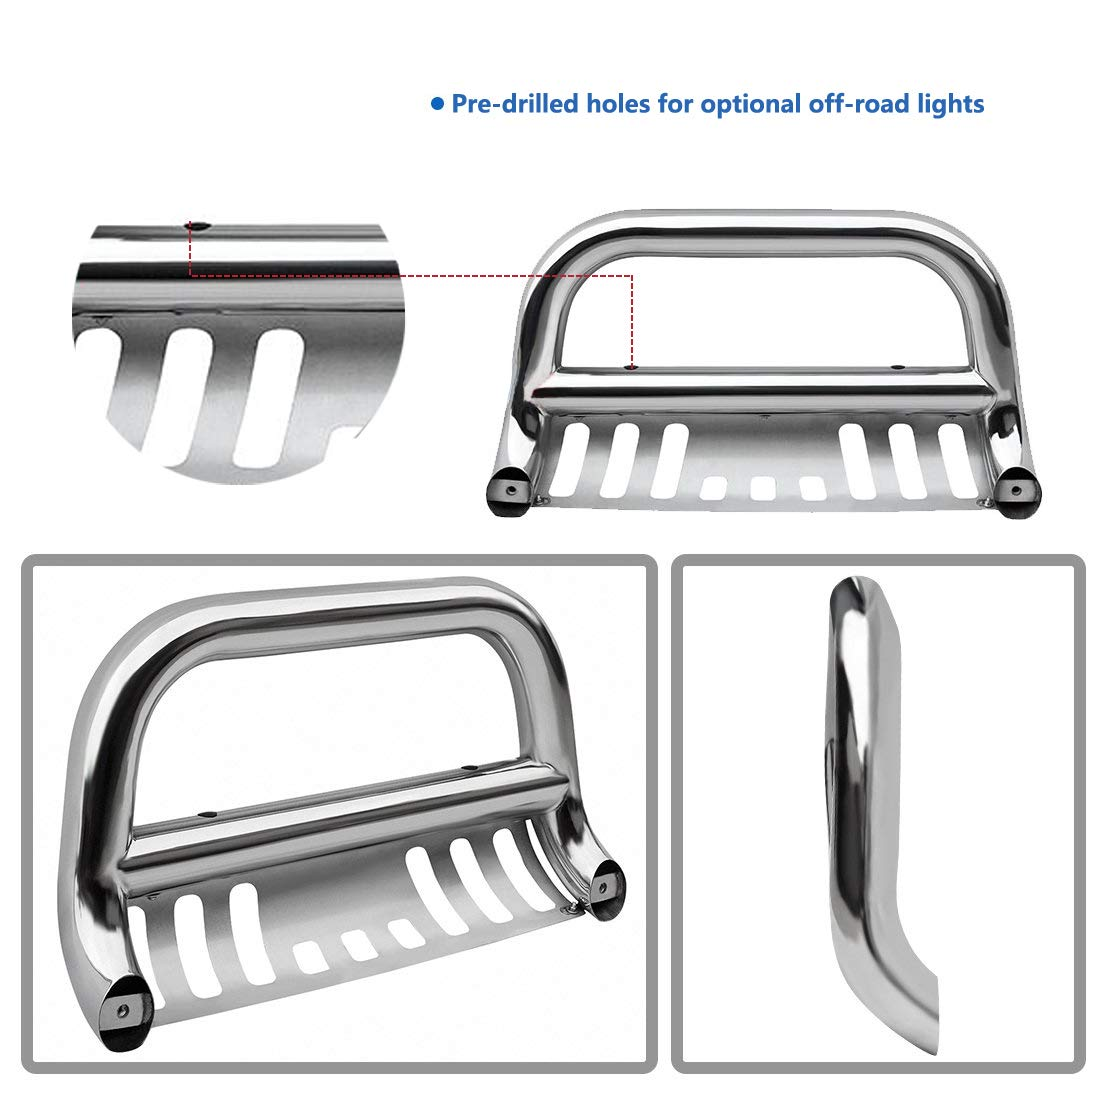 TRIL GEAR Stainless Steel Bumper Brush Push Bull Bar Compatible with 16-19 Toyota Tacoma Grille Guard with Skid Plate Silver